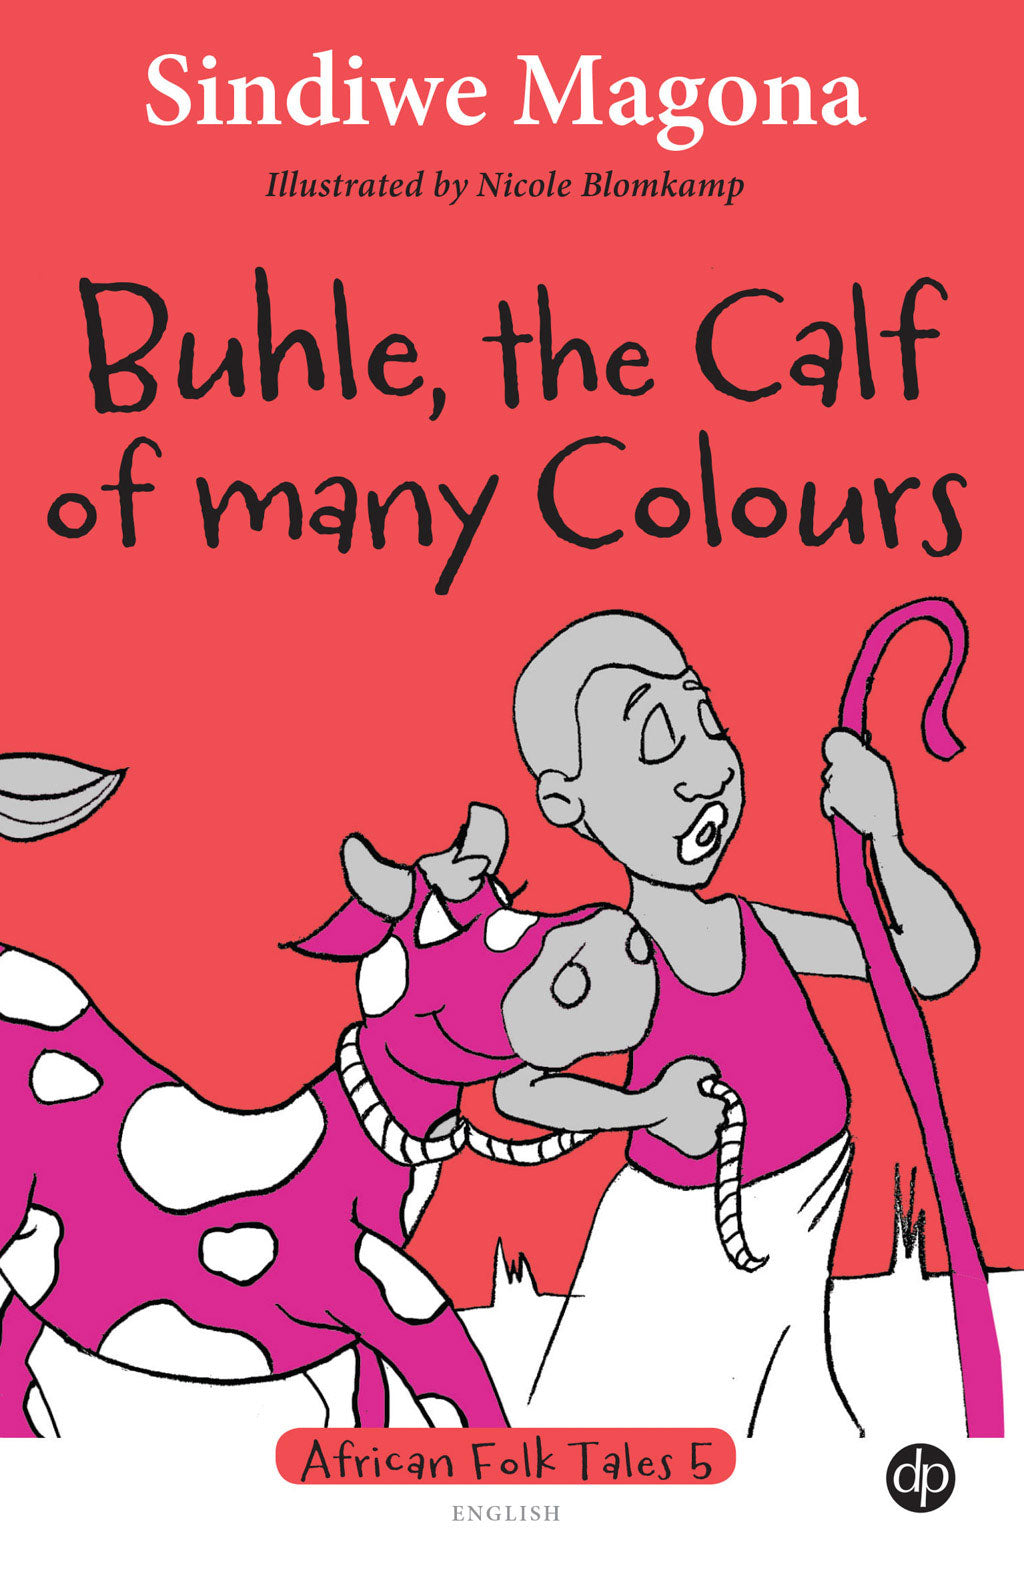 Buhle, the Calf of many Colours - Folk Tale 5